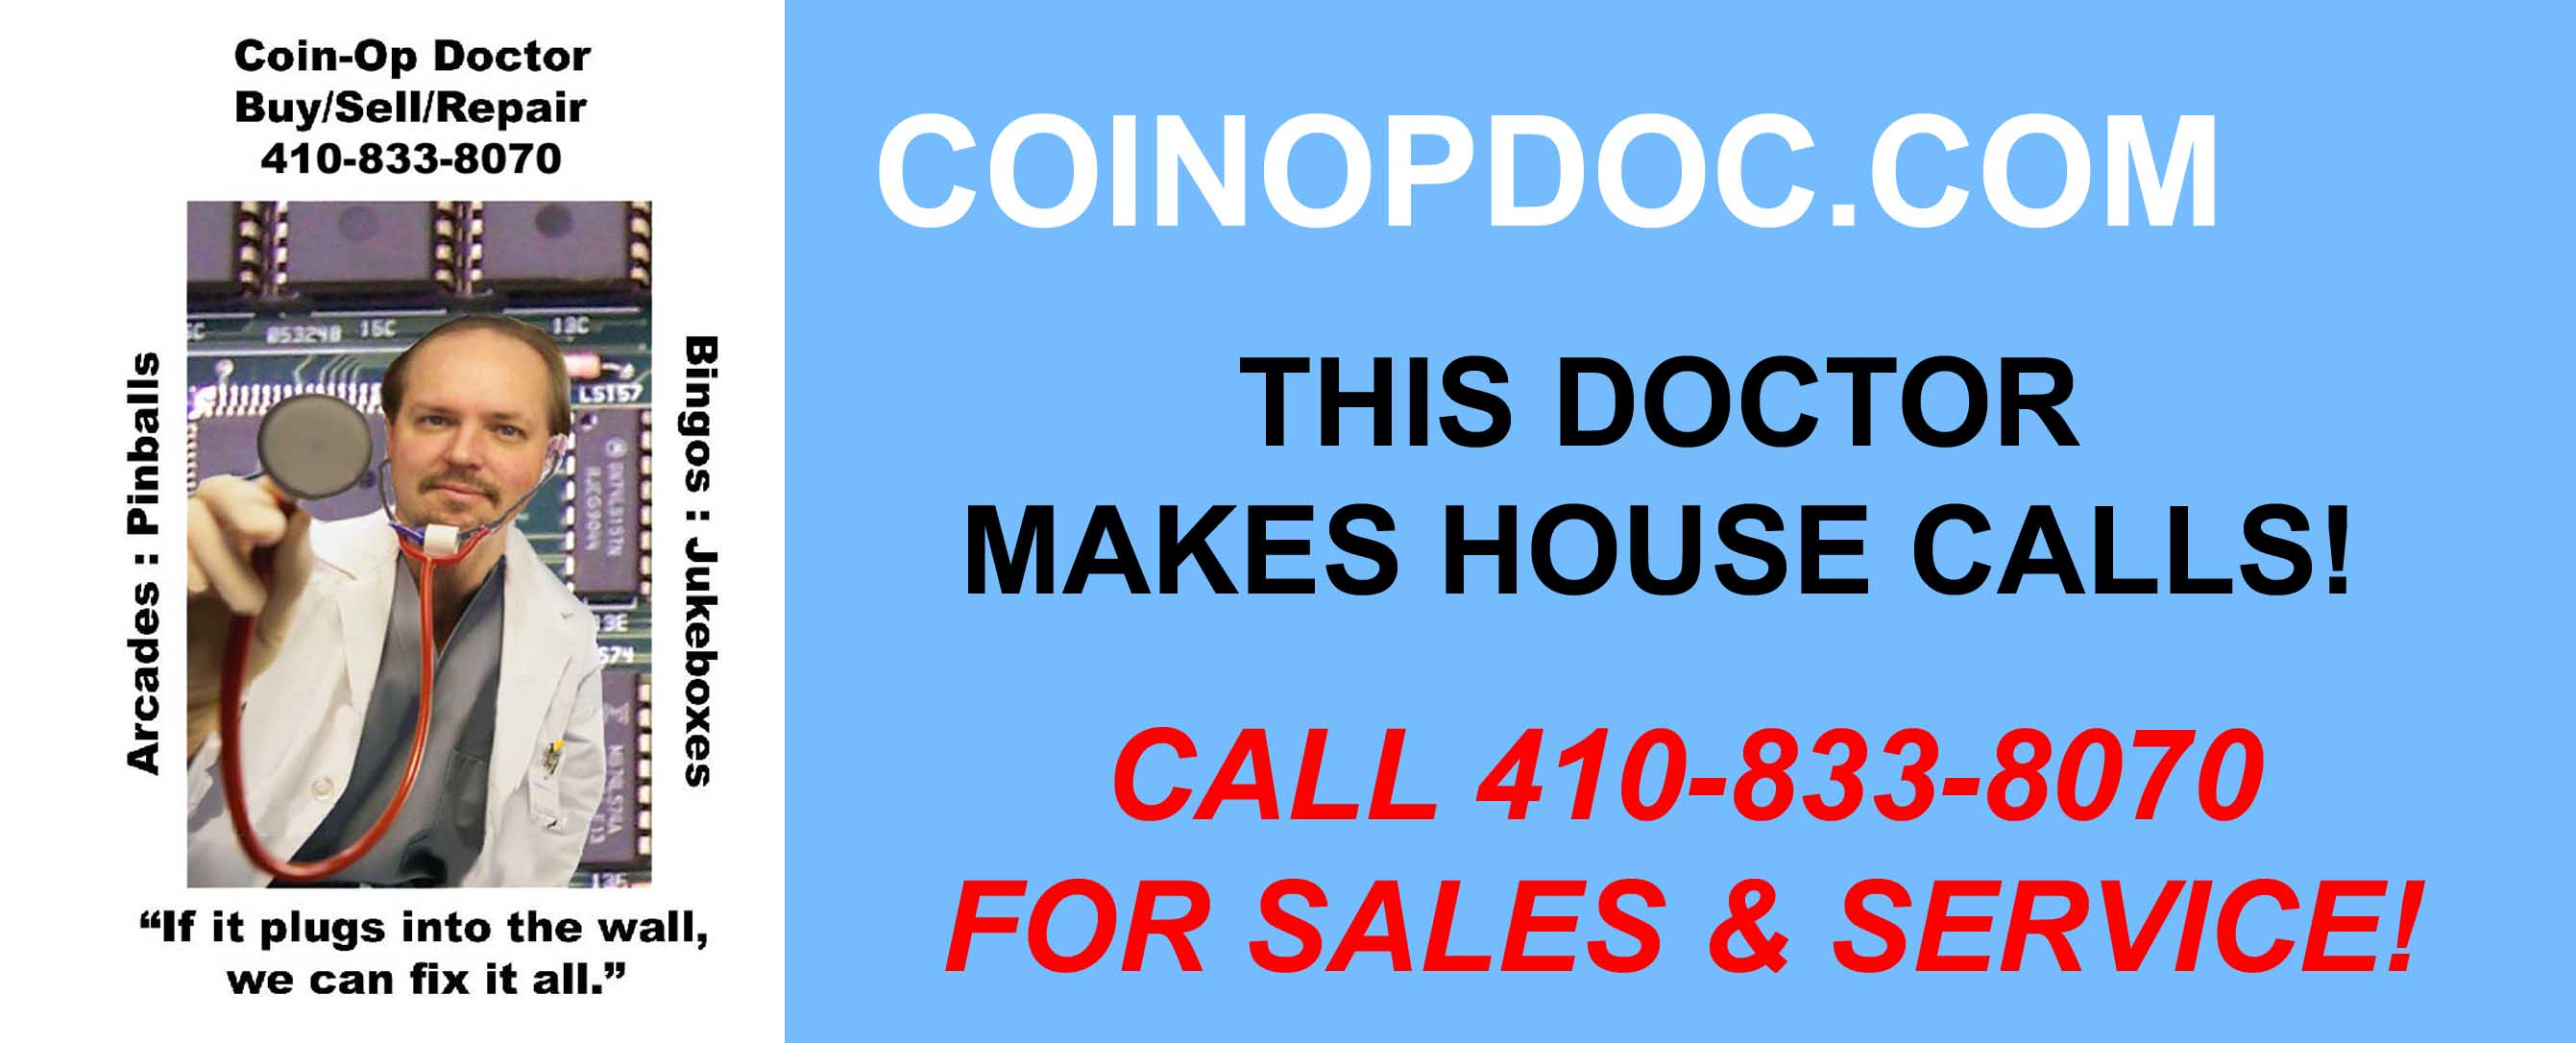 Coin-Op Doctor of Maryland - Sales & Repair Service of